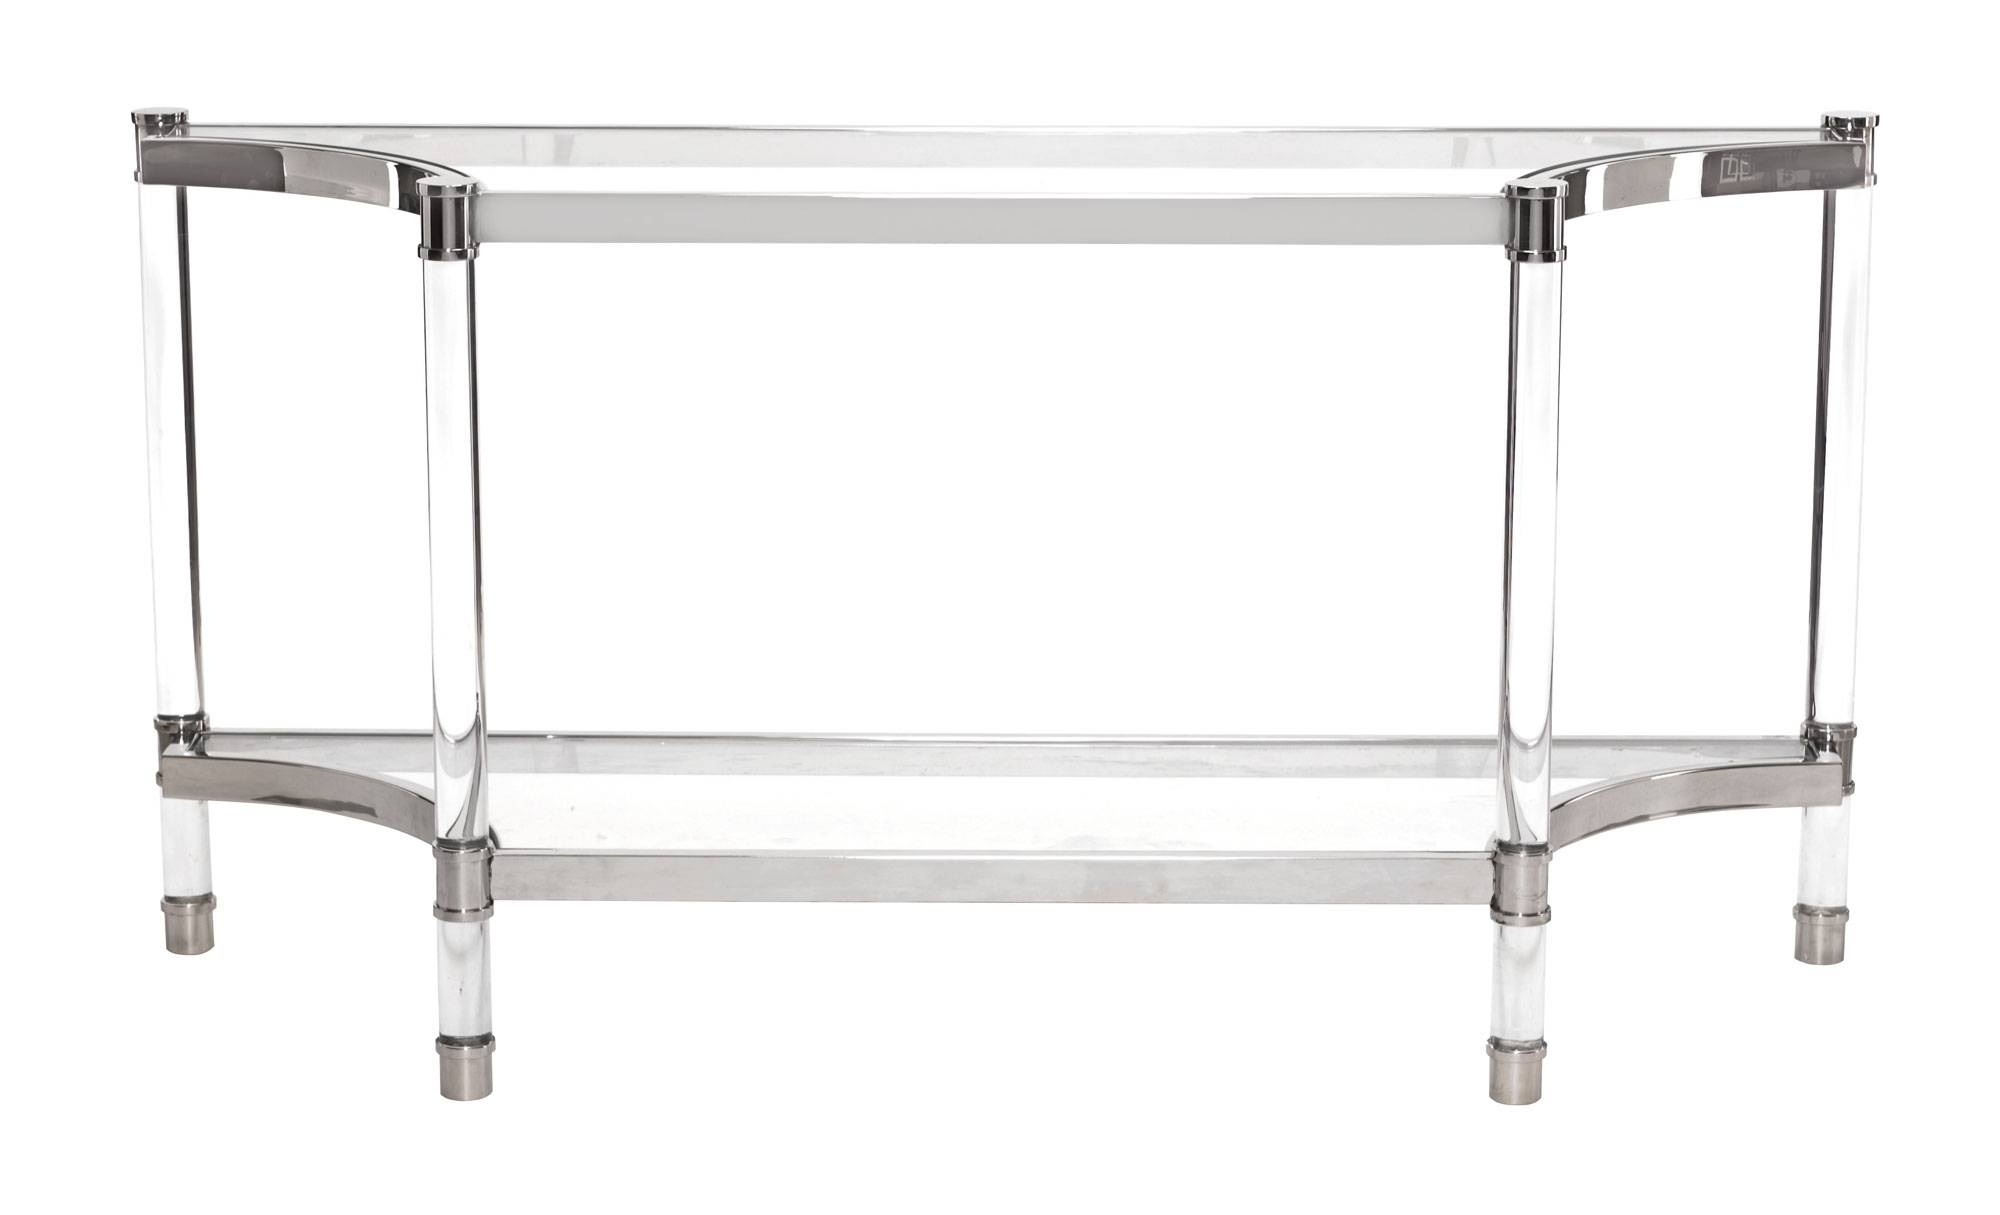 Console Table | Bernhardt pertaining to Bernhardt Console Tables (Image 8 of 15)